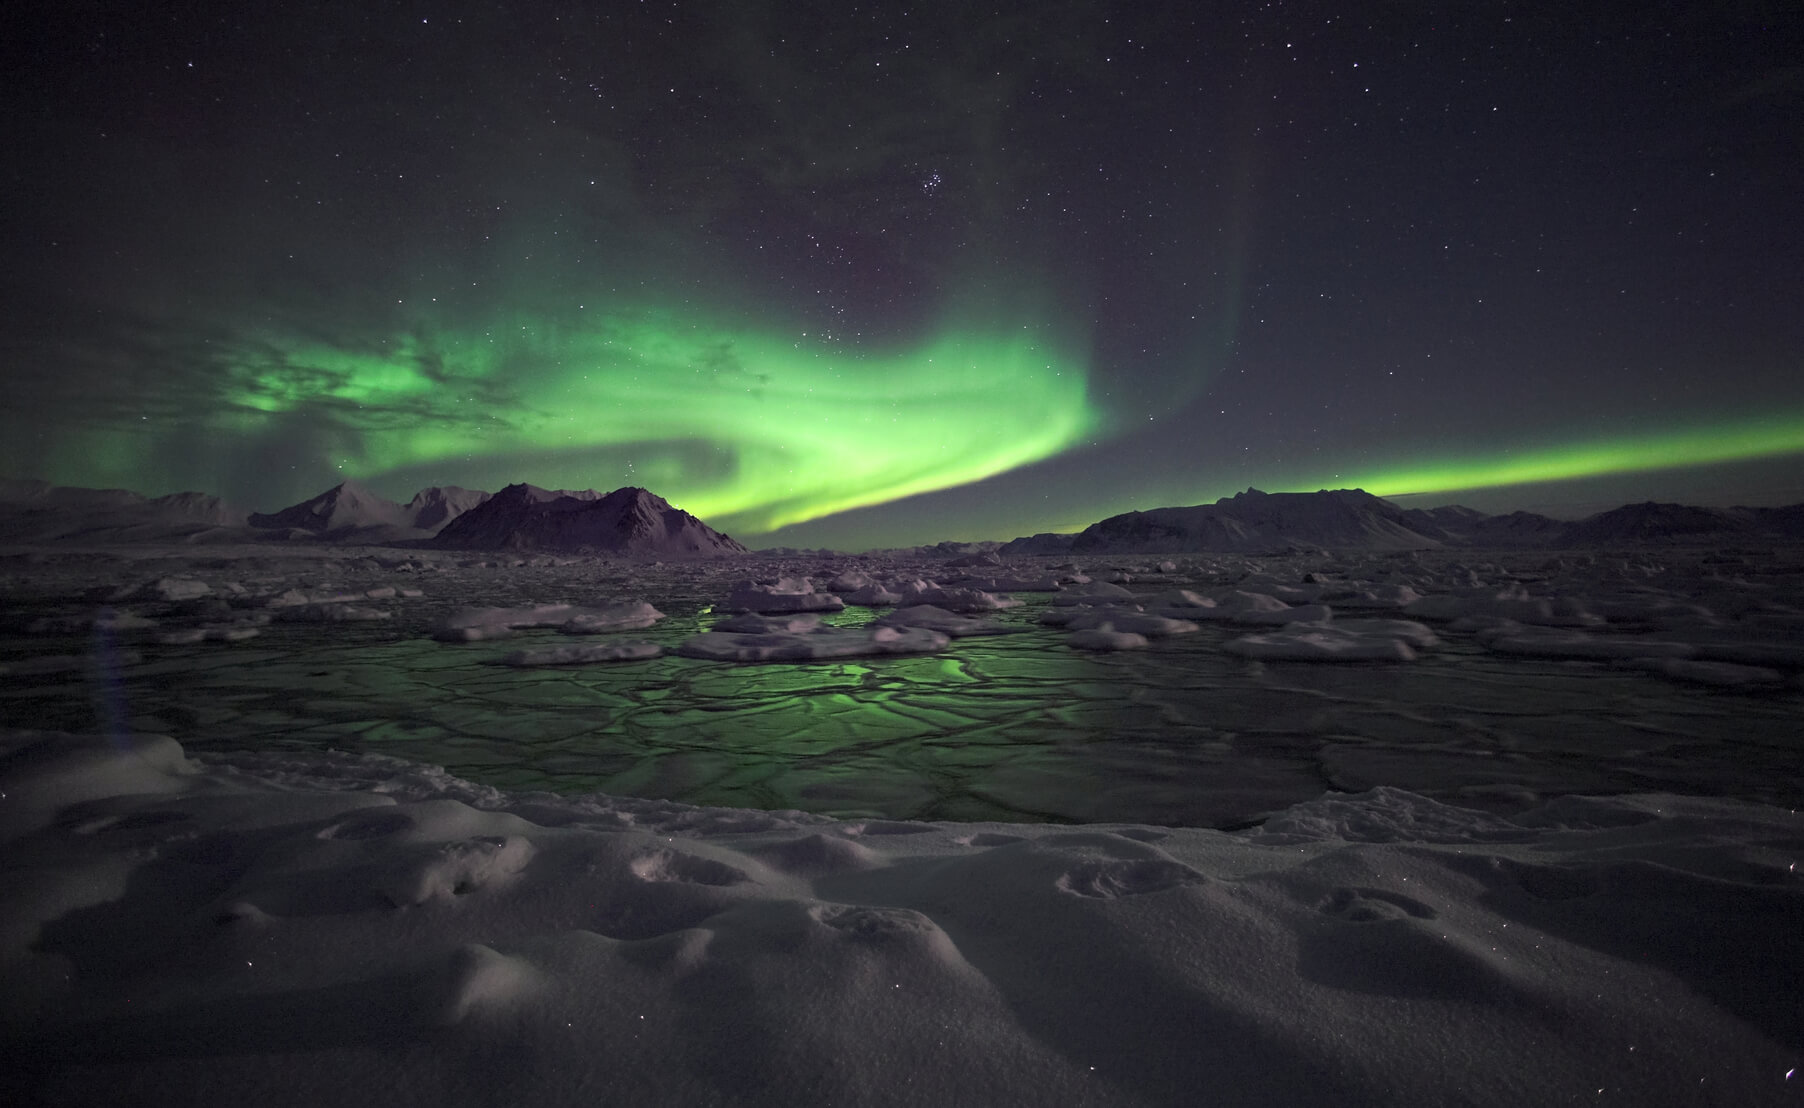 Non-stop from Toronto, Canada to Reykjavik, Iceland for only $333 CAD roundtrip